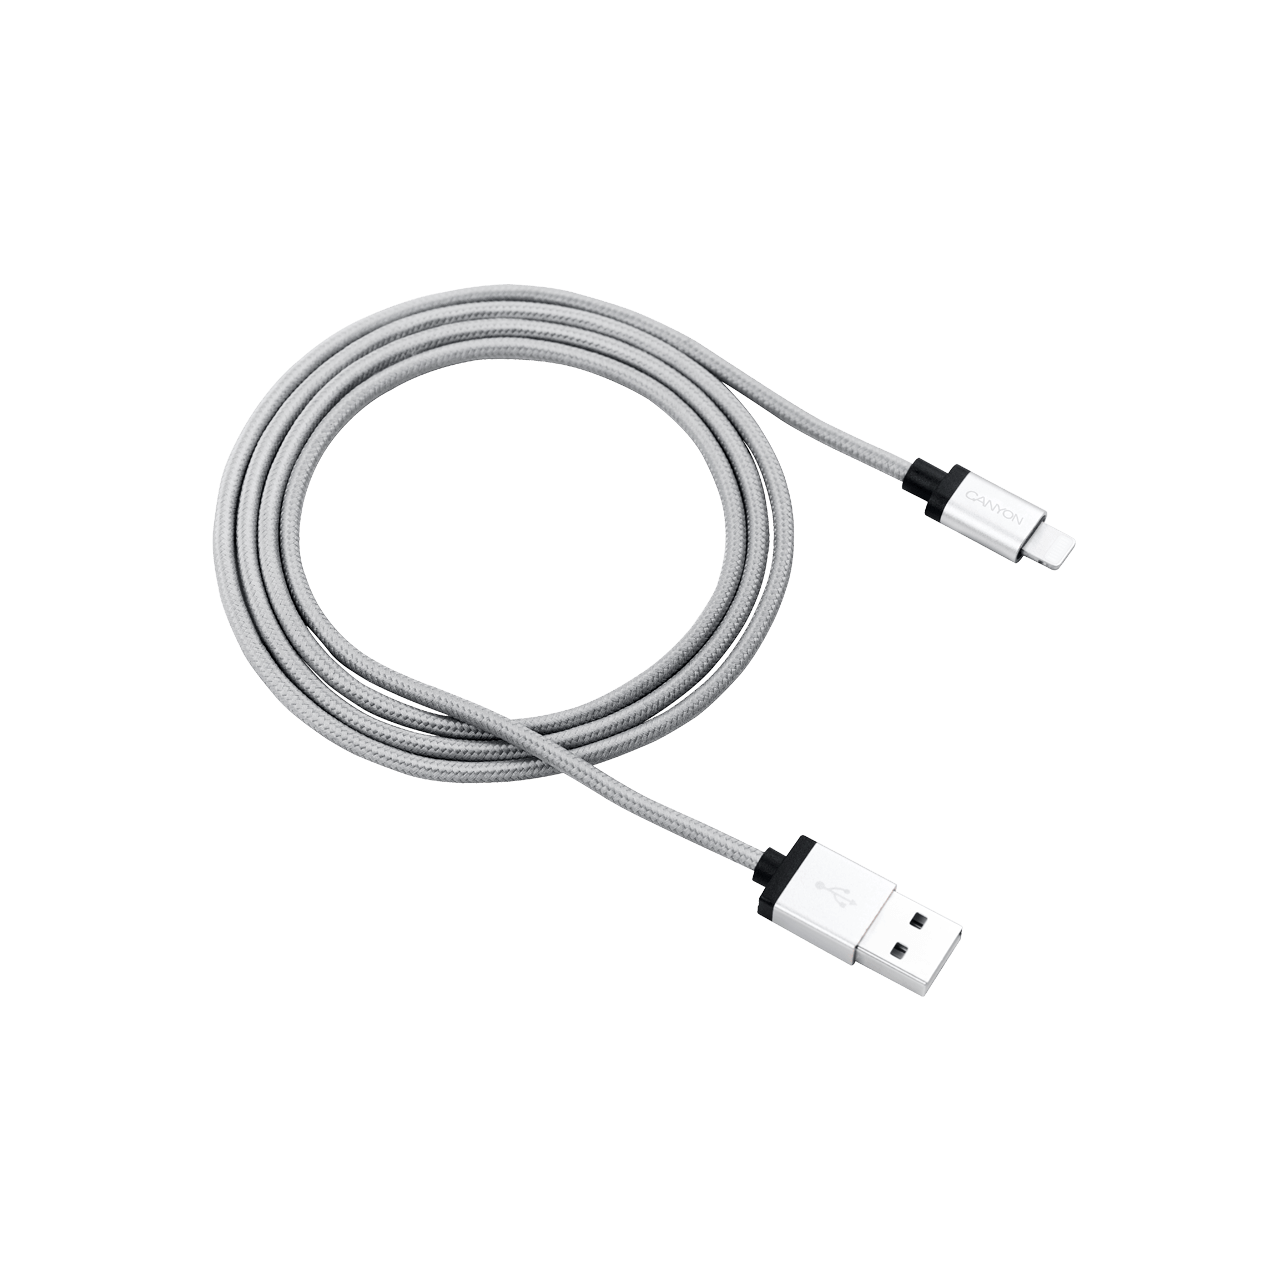 Charge Amp Sync Mfi Braided Cable Cns Mfic3dg